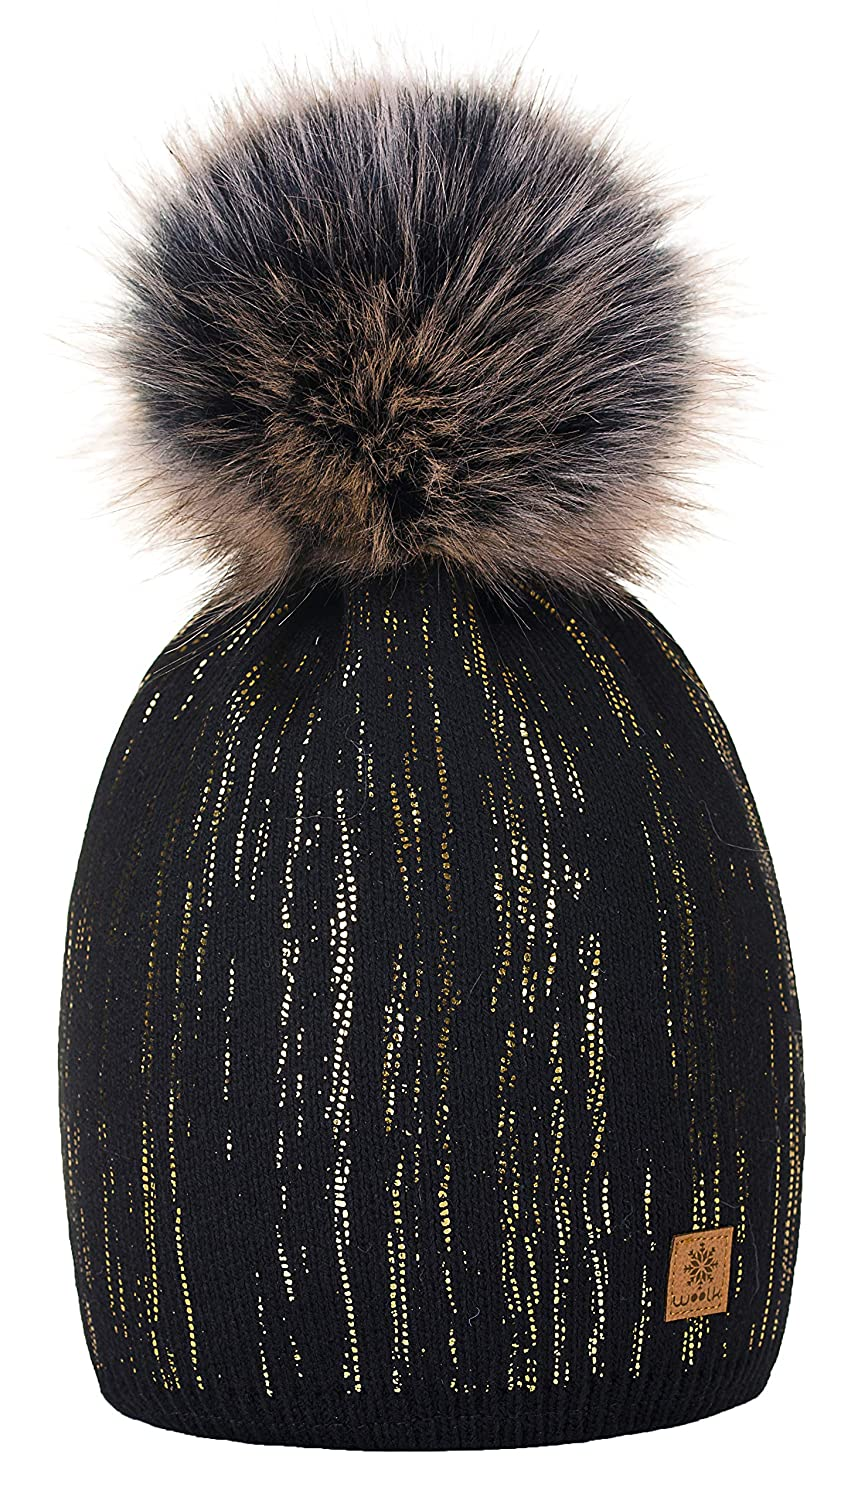 d6b0c32b0c7 4sold Womens Ladies Winter Hat Wool Knitted Beanie with Large Pom Pom Cap  SKI Snowboard Hats Bobble Gold Circle Rain Crystals (Black Gold)   Amazon.co.uk  ...